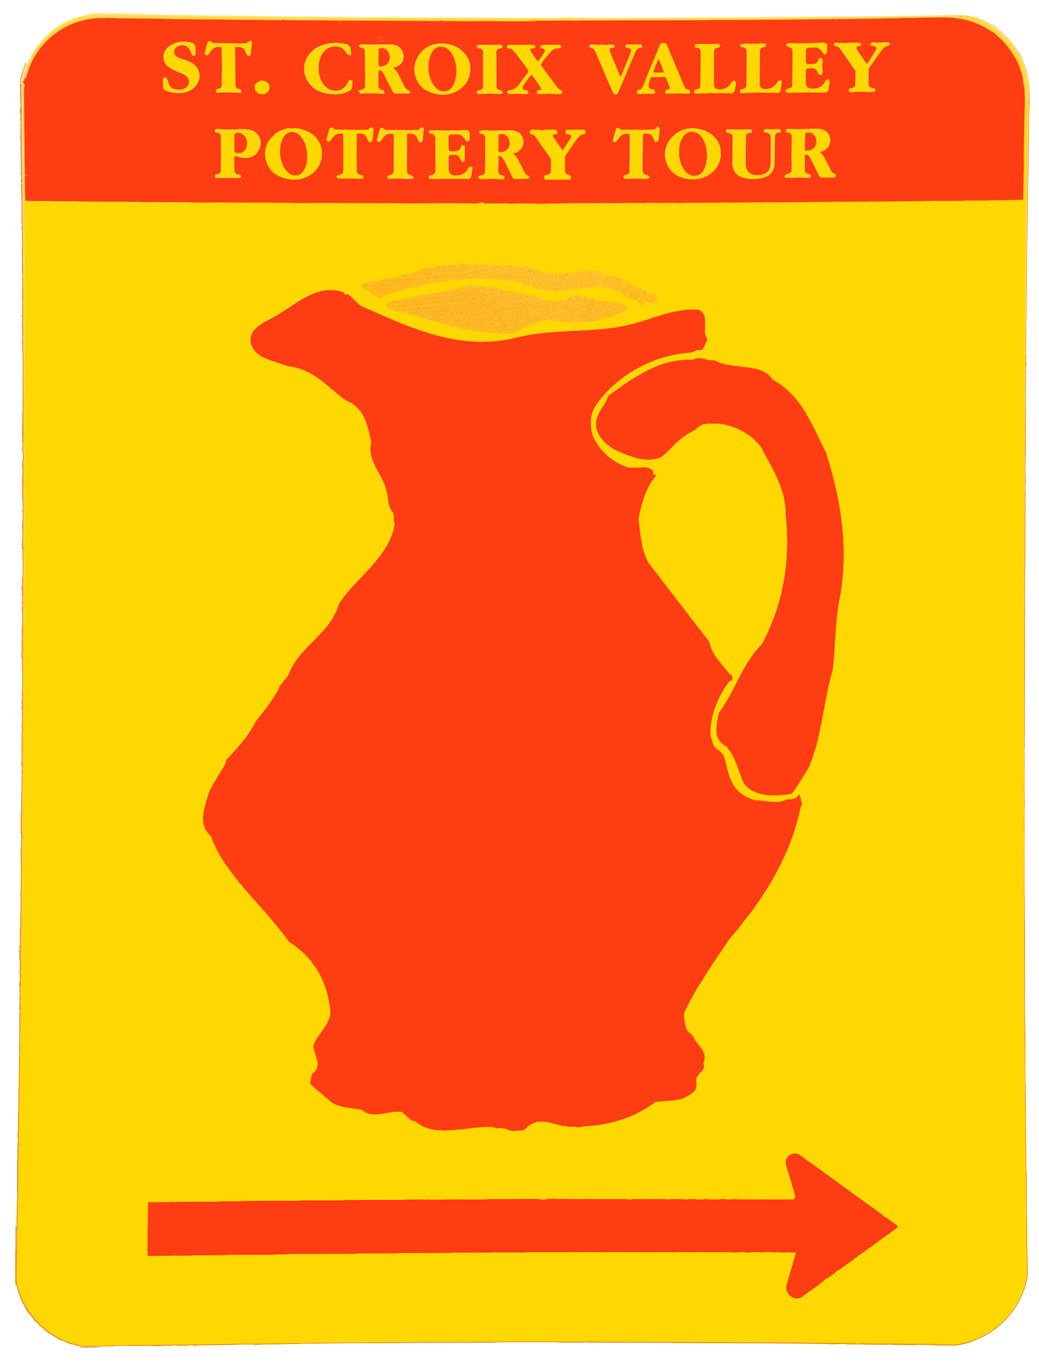 St. Croix Valley Pottery Tour Logo